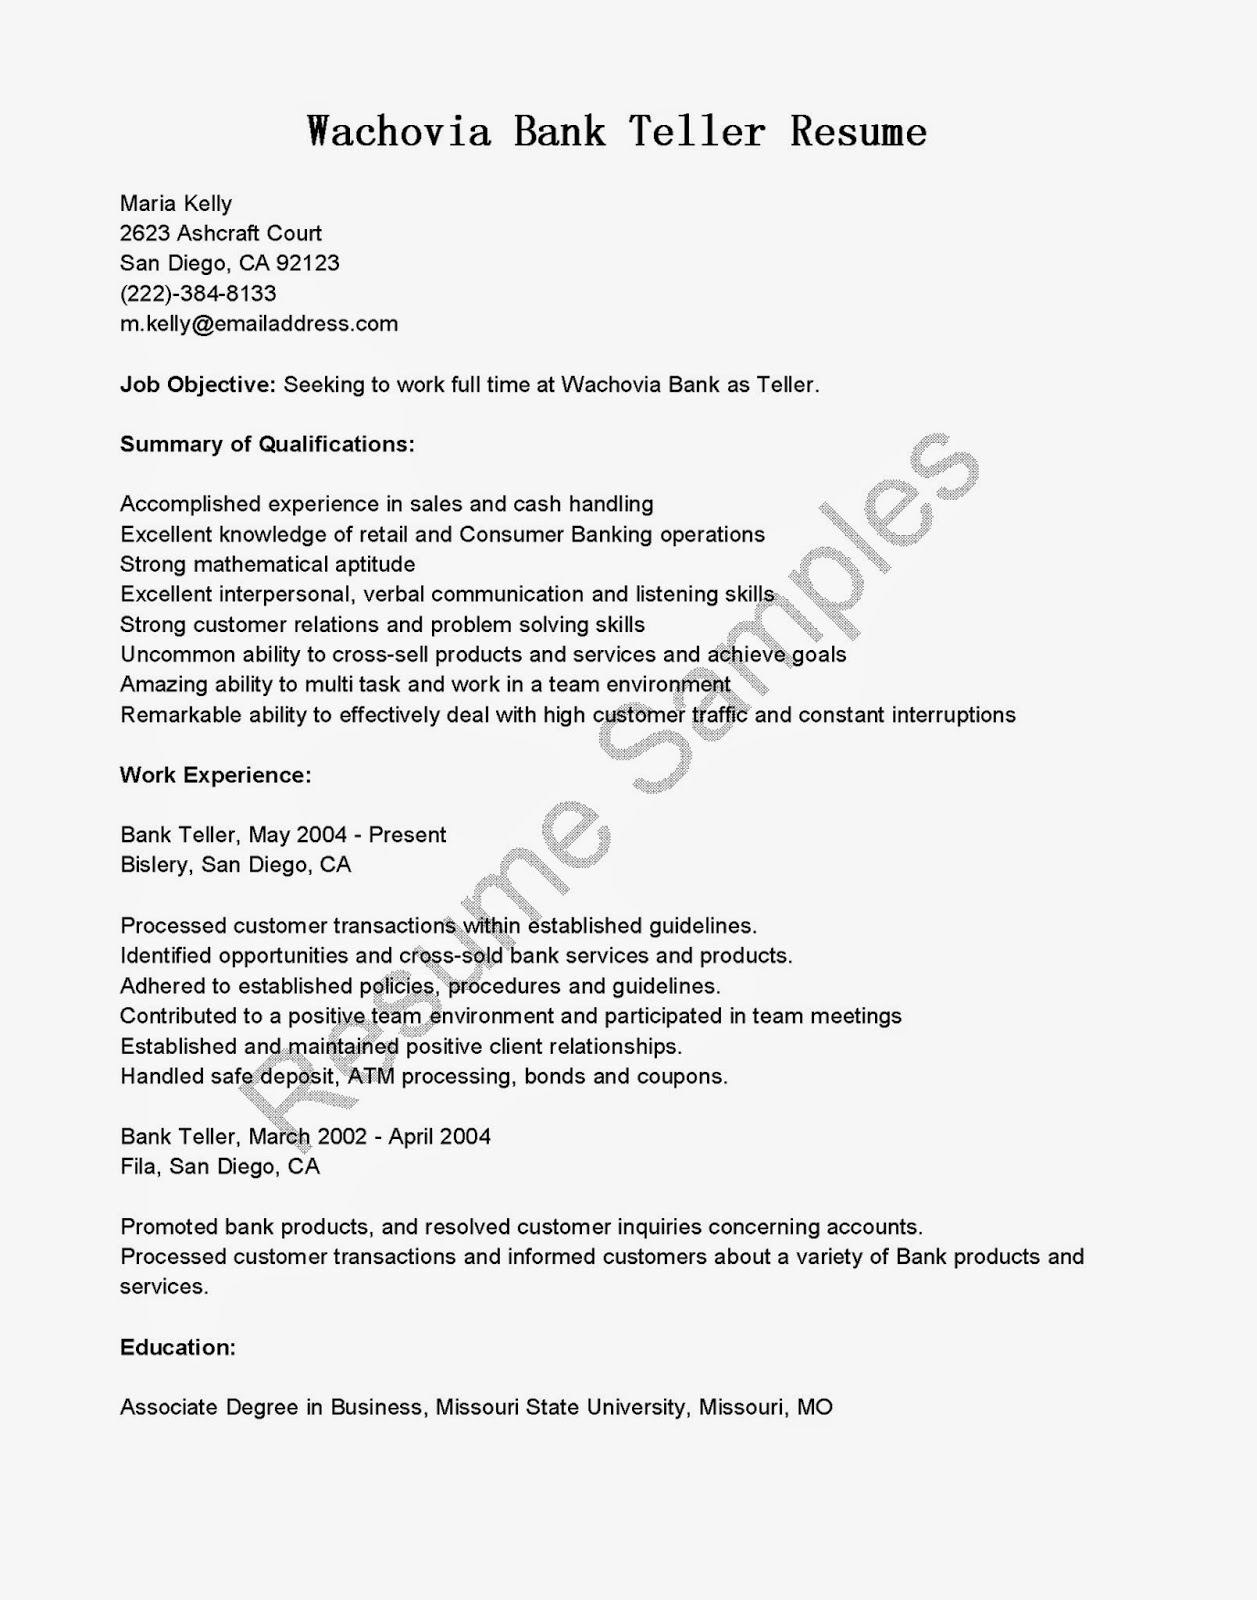 Resume Samples Wachovia Bank Teller Resume Sample